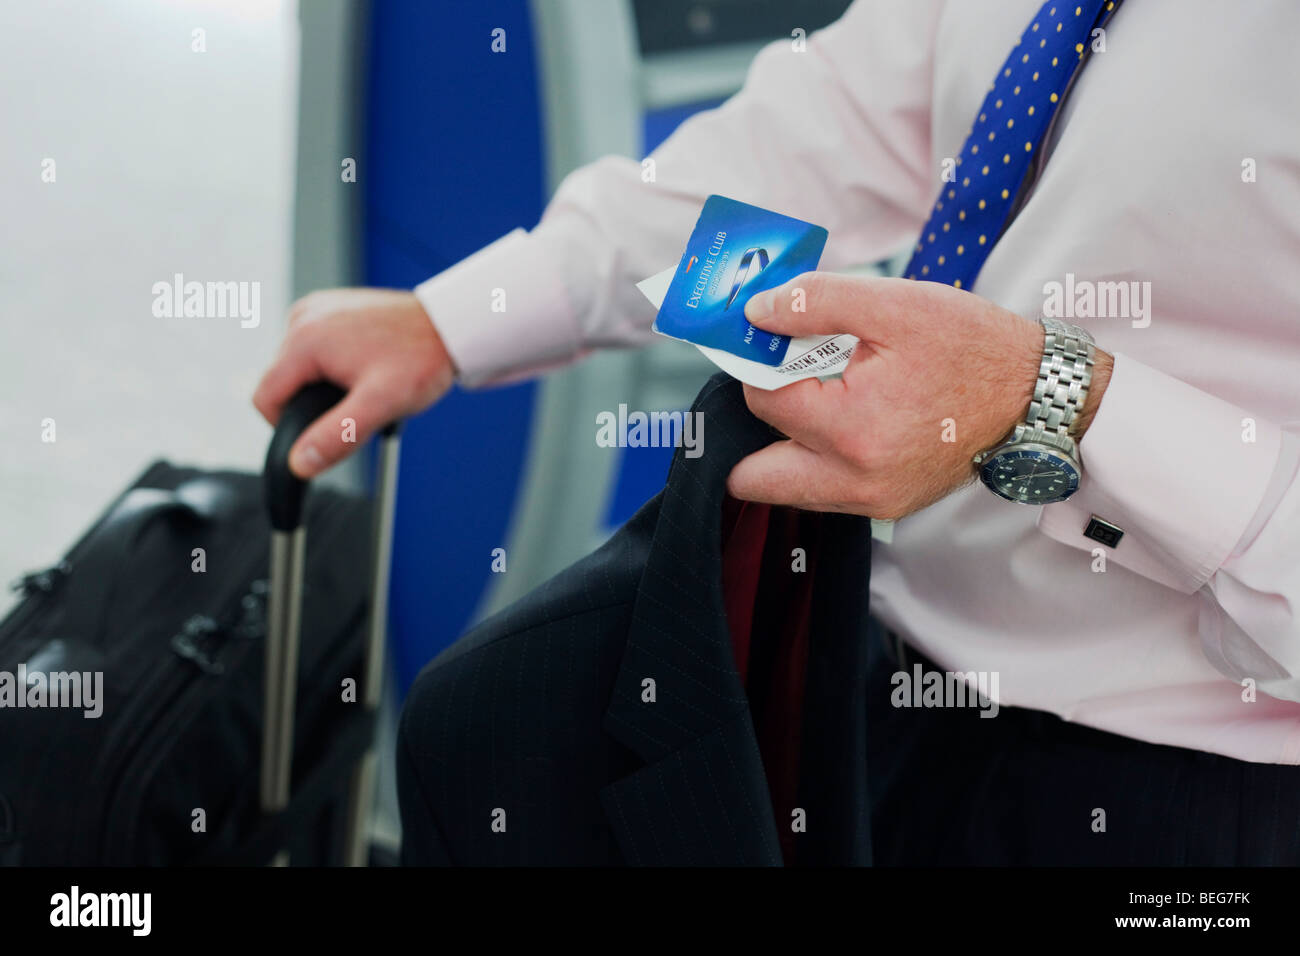 A businessman holds travel documents as he checks-in at the British Airways self-ticketing kiosk at Heathrow's - Stock Image